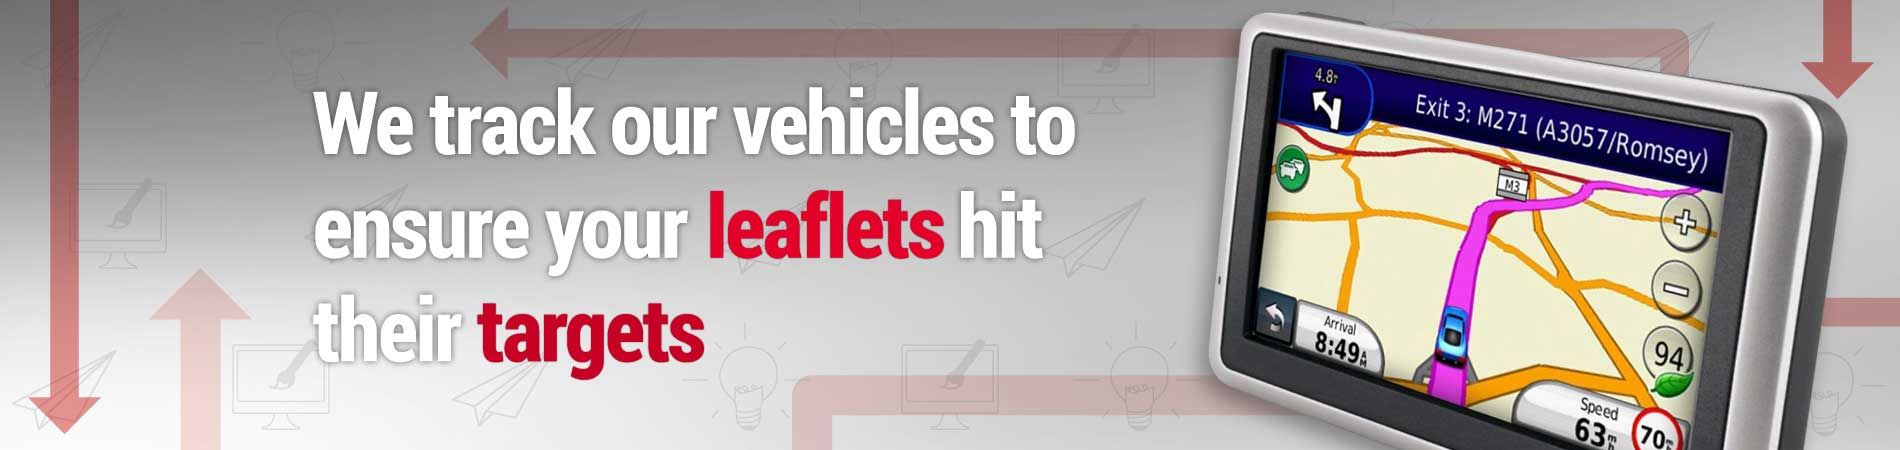 Vehicle Tracking Ensure Leaflets Hit Targets